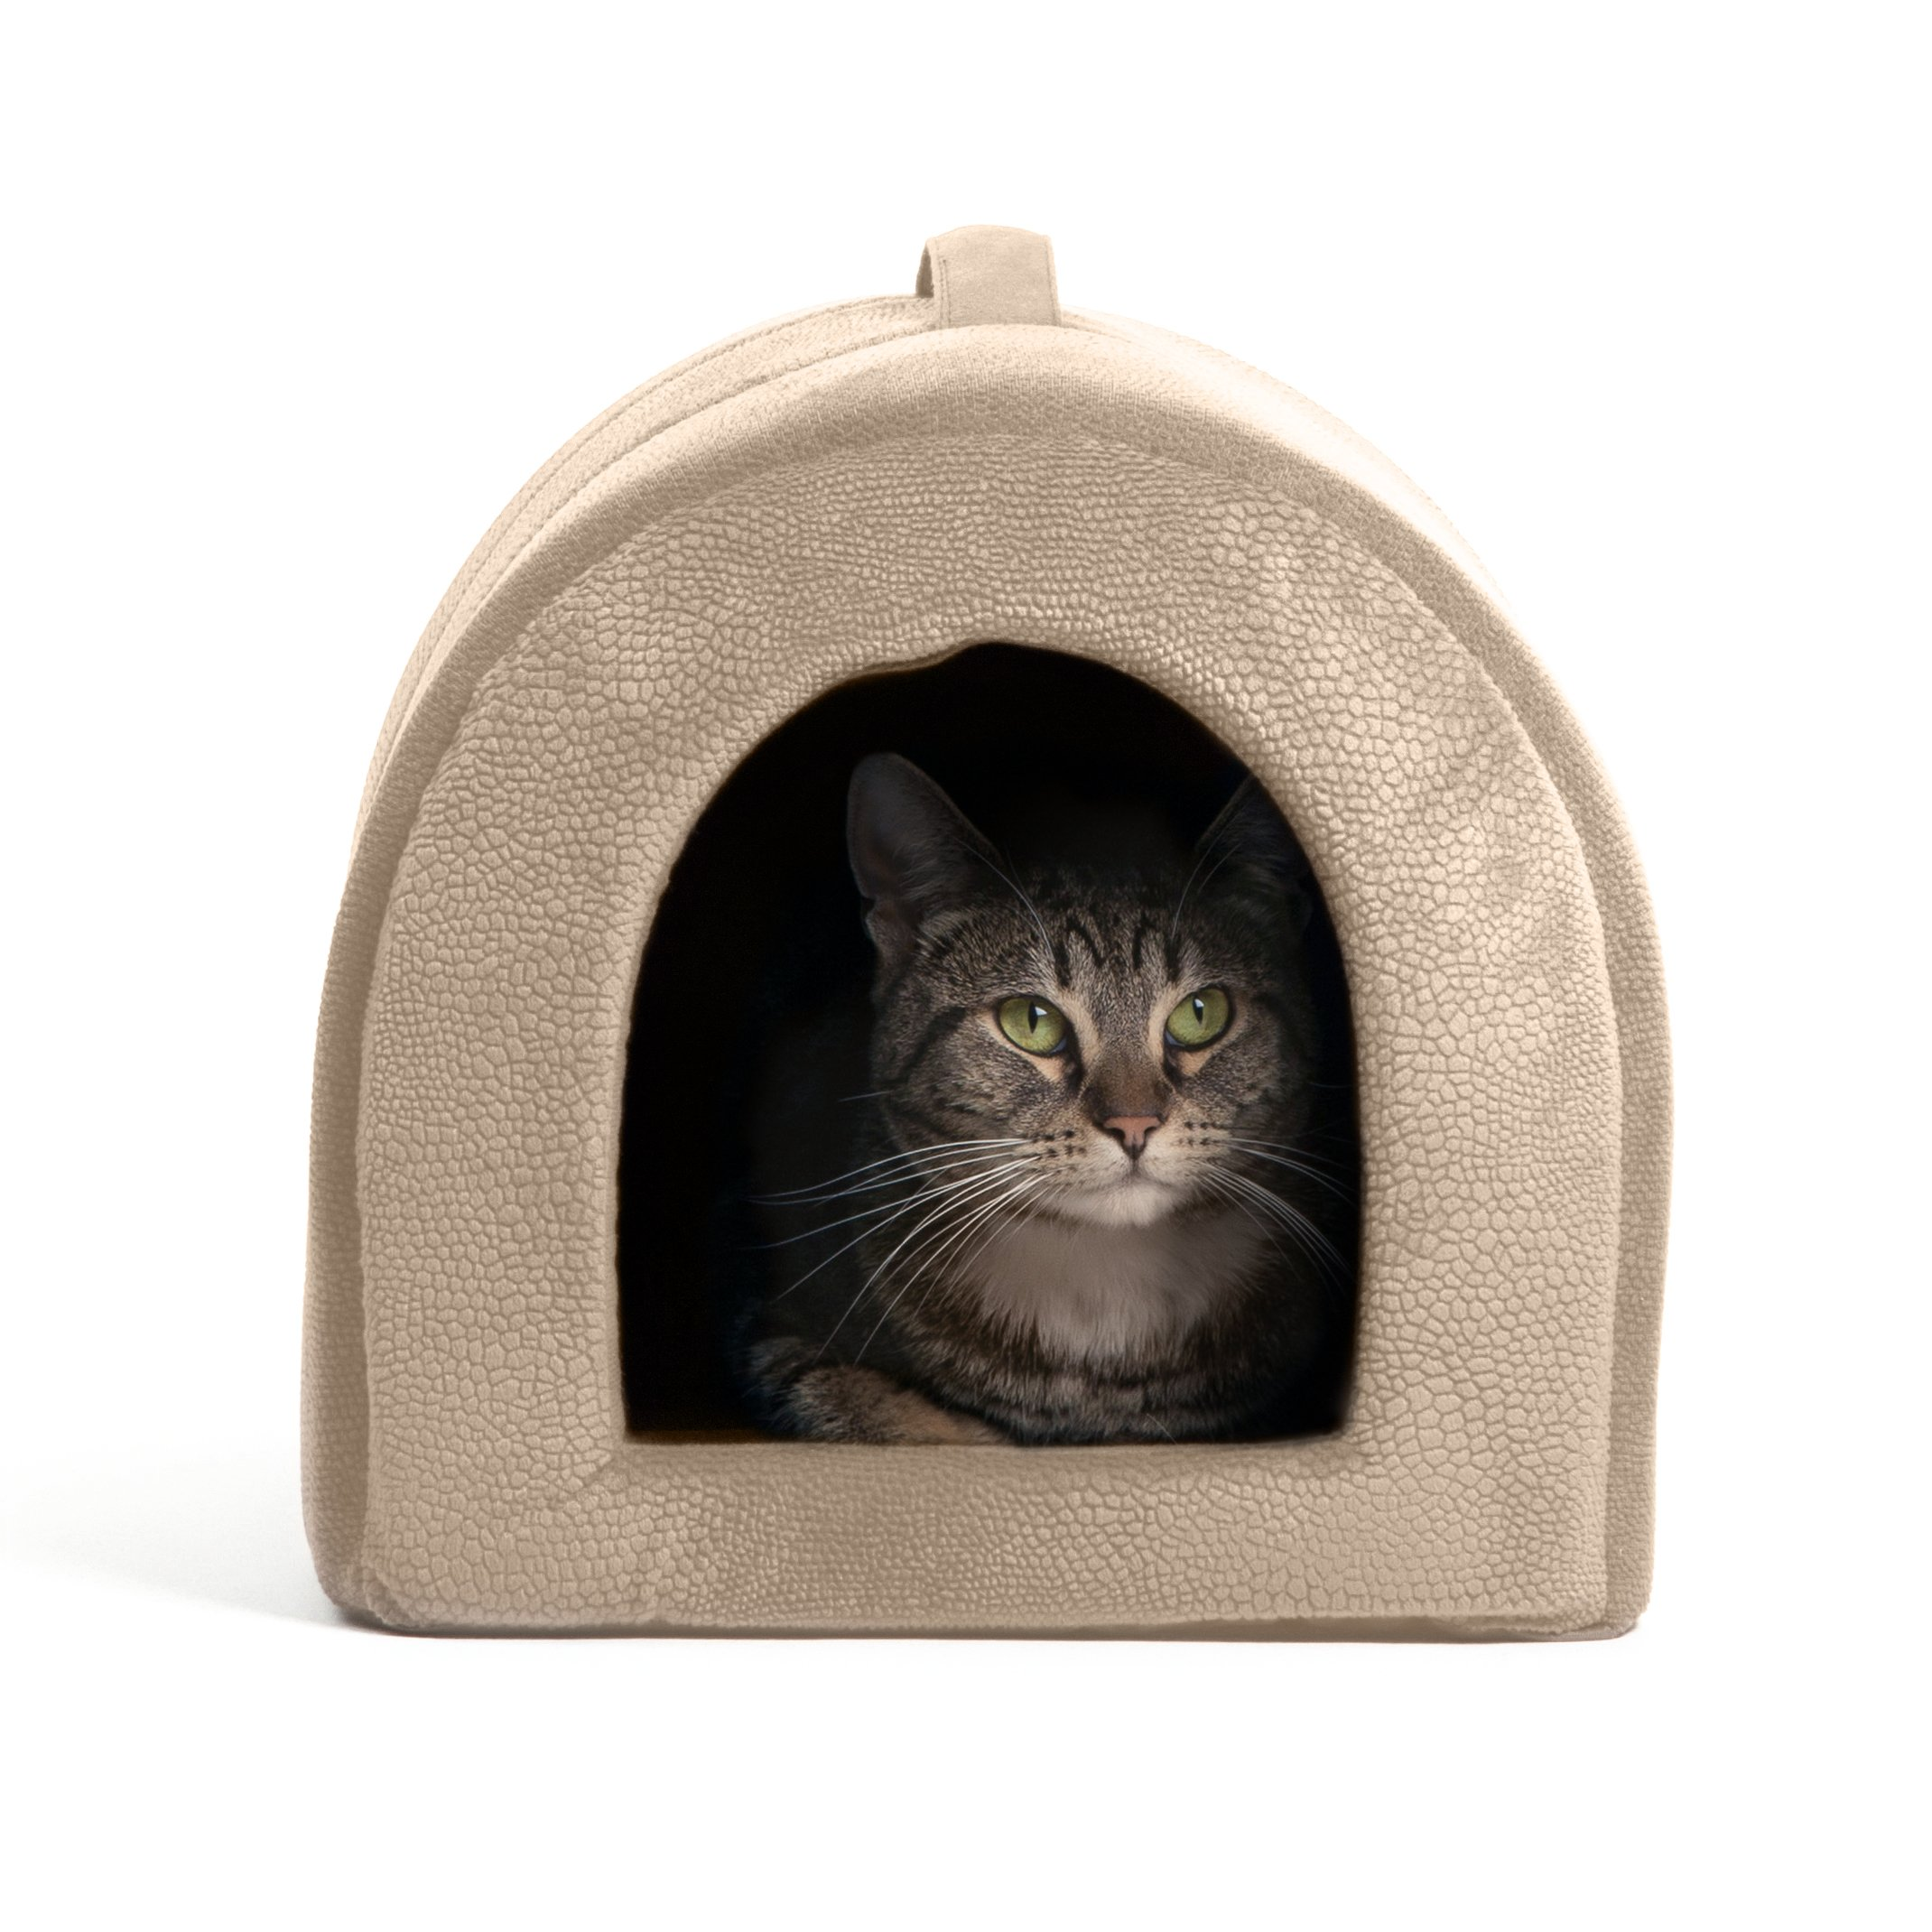 Best Friends by Sheri Pet Igloo Hut, ilan, Wheat - Cat and Small Dog Bed Offers Privacy and Warmth for Better Sleep - 17x13x12 - For Pets 9lbs or Less